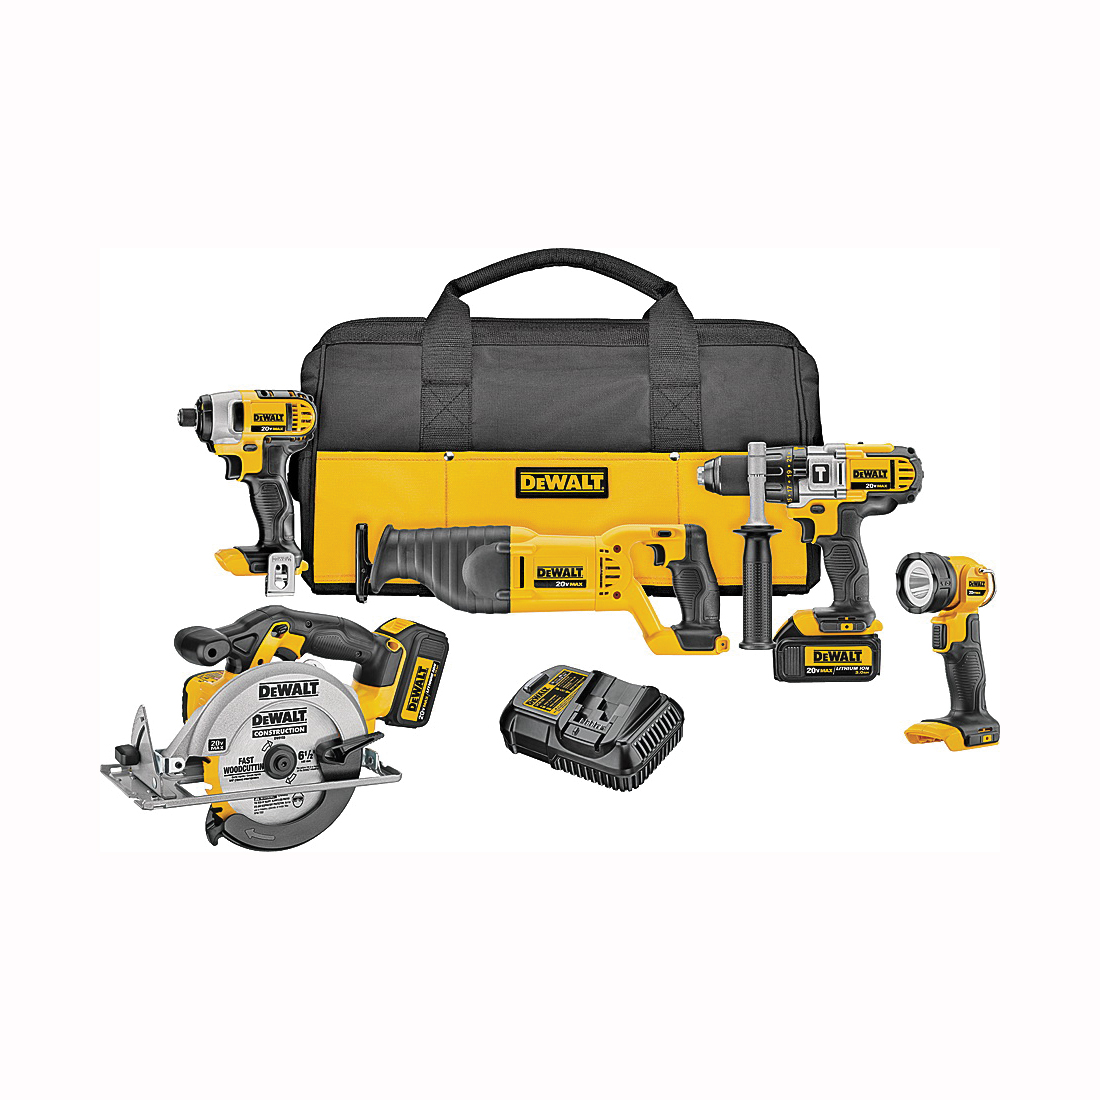 Picture of DeWALT DCK590L2 Combo Kit, Battery Included: Yes